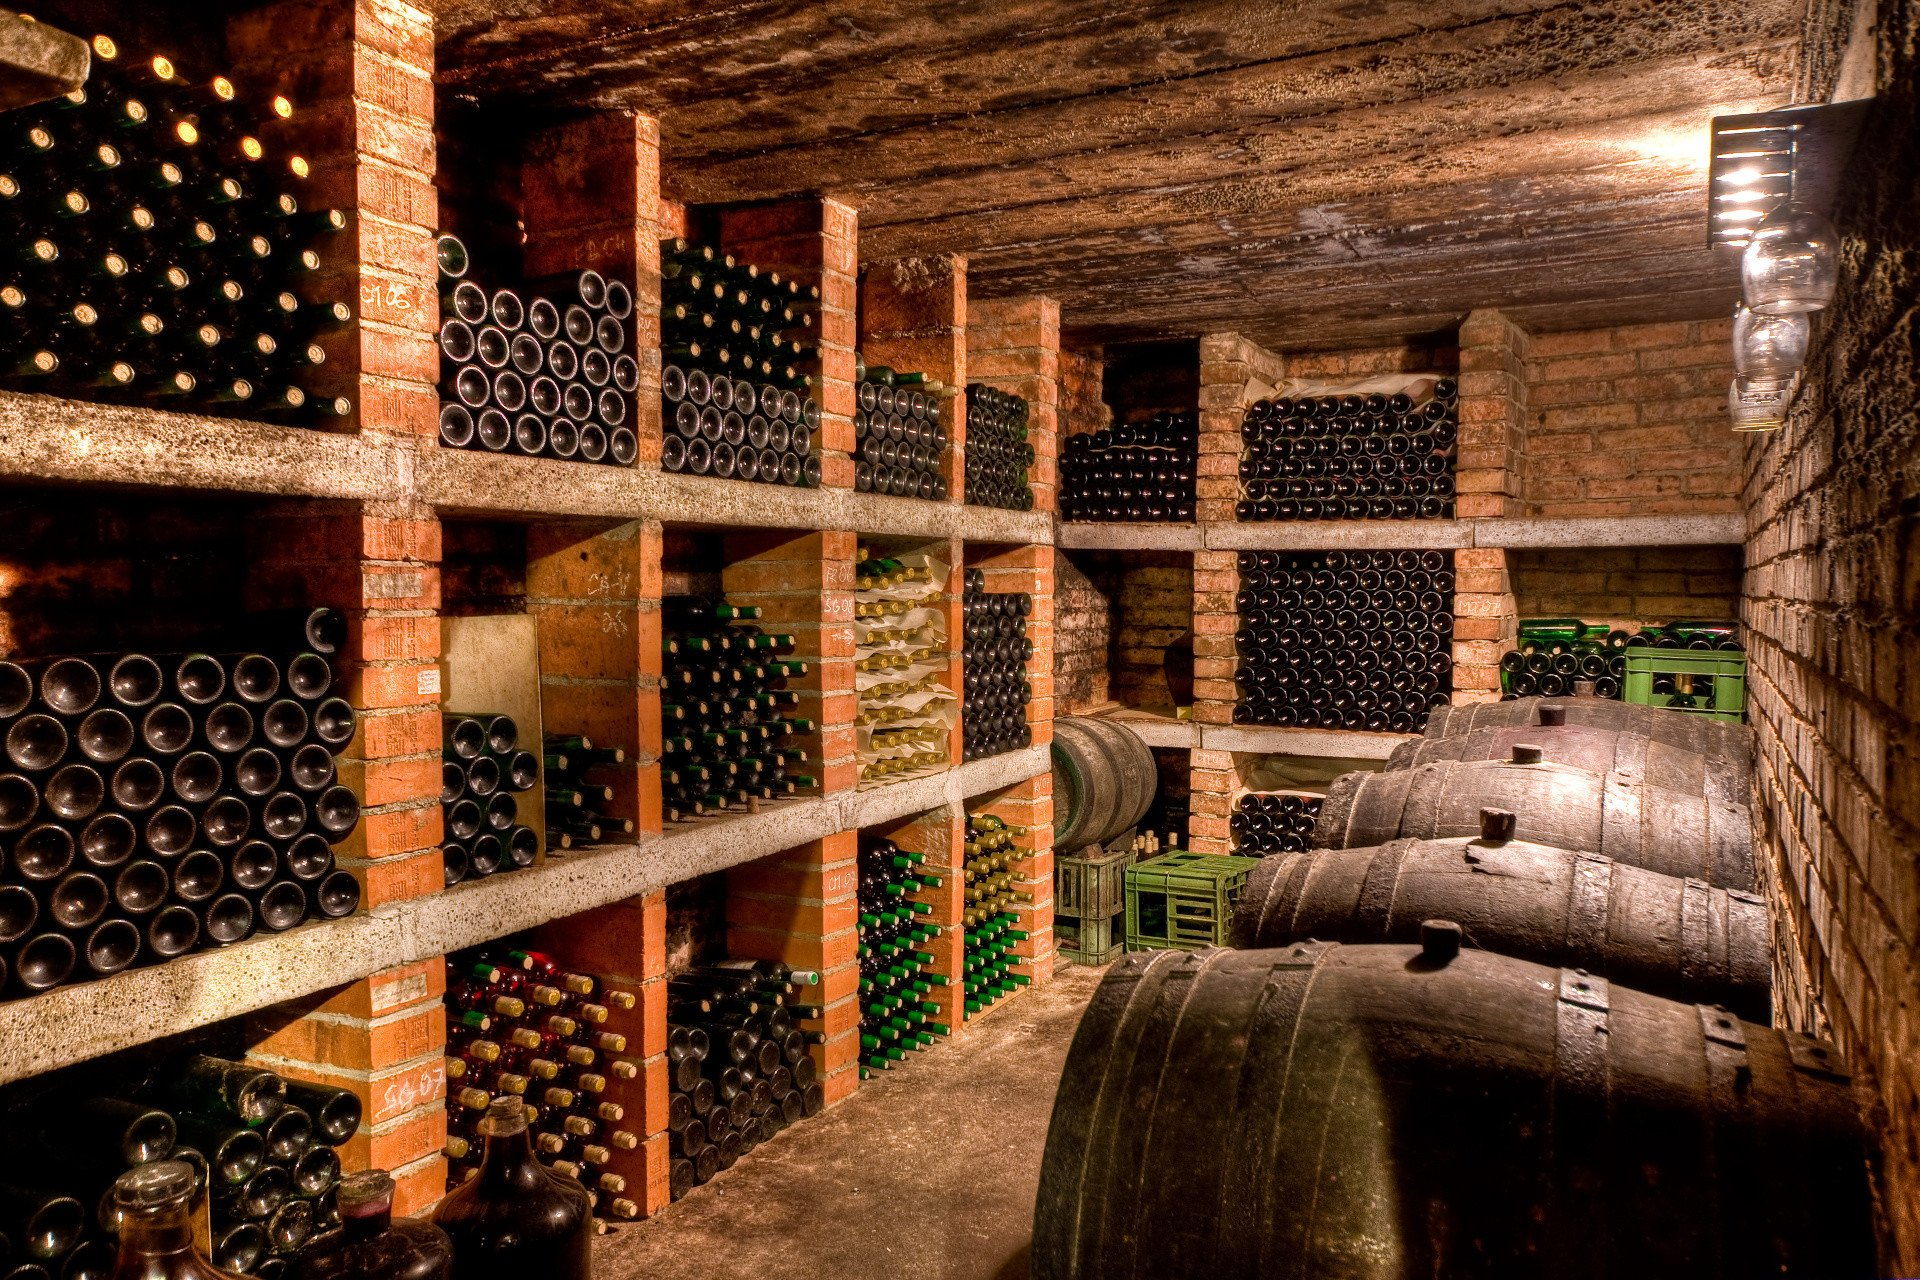 A cellar with bottles and barrels of wine